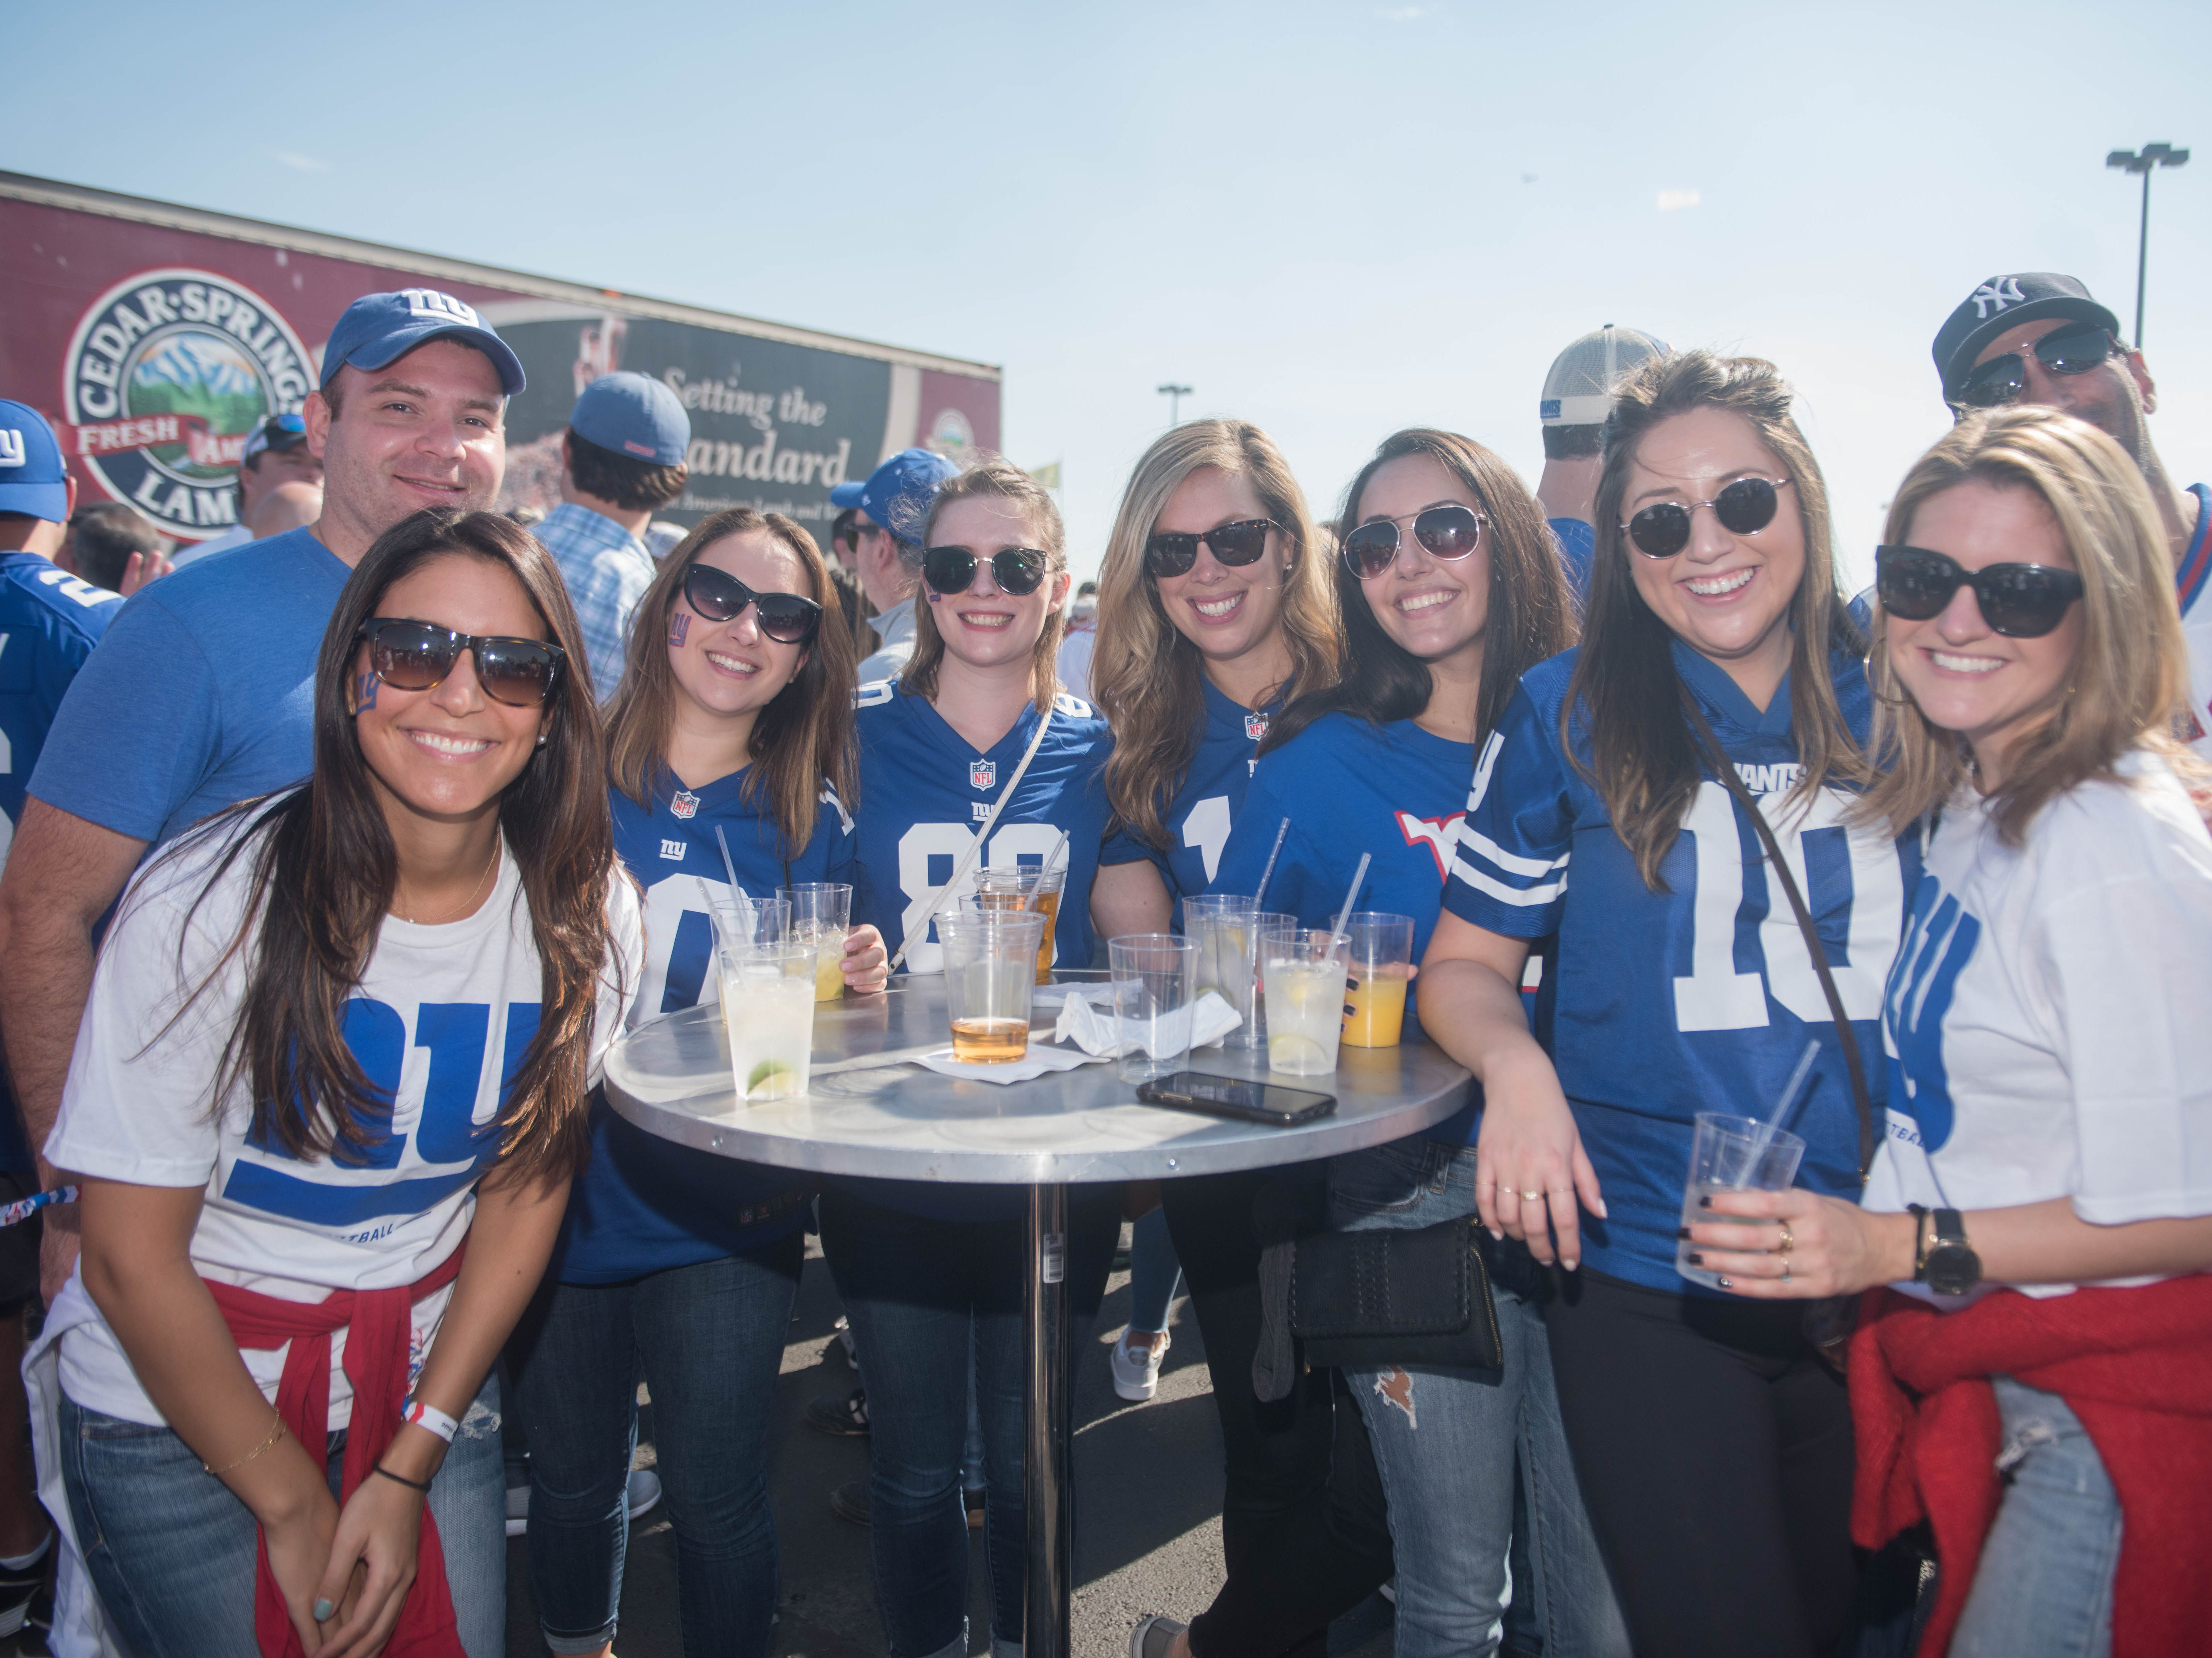 Beasann, Brian, Ana, Kelly, Devyn, Joanna, Shanyna and Allison at the Giants vs. Saints tailgate party, Sunday, Sept. 30, 2018.